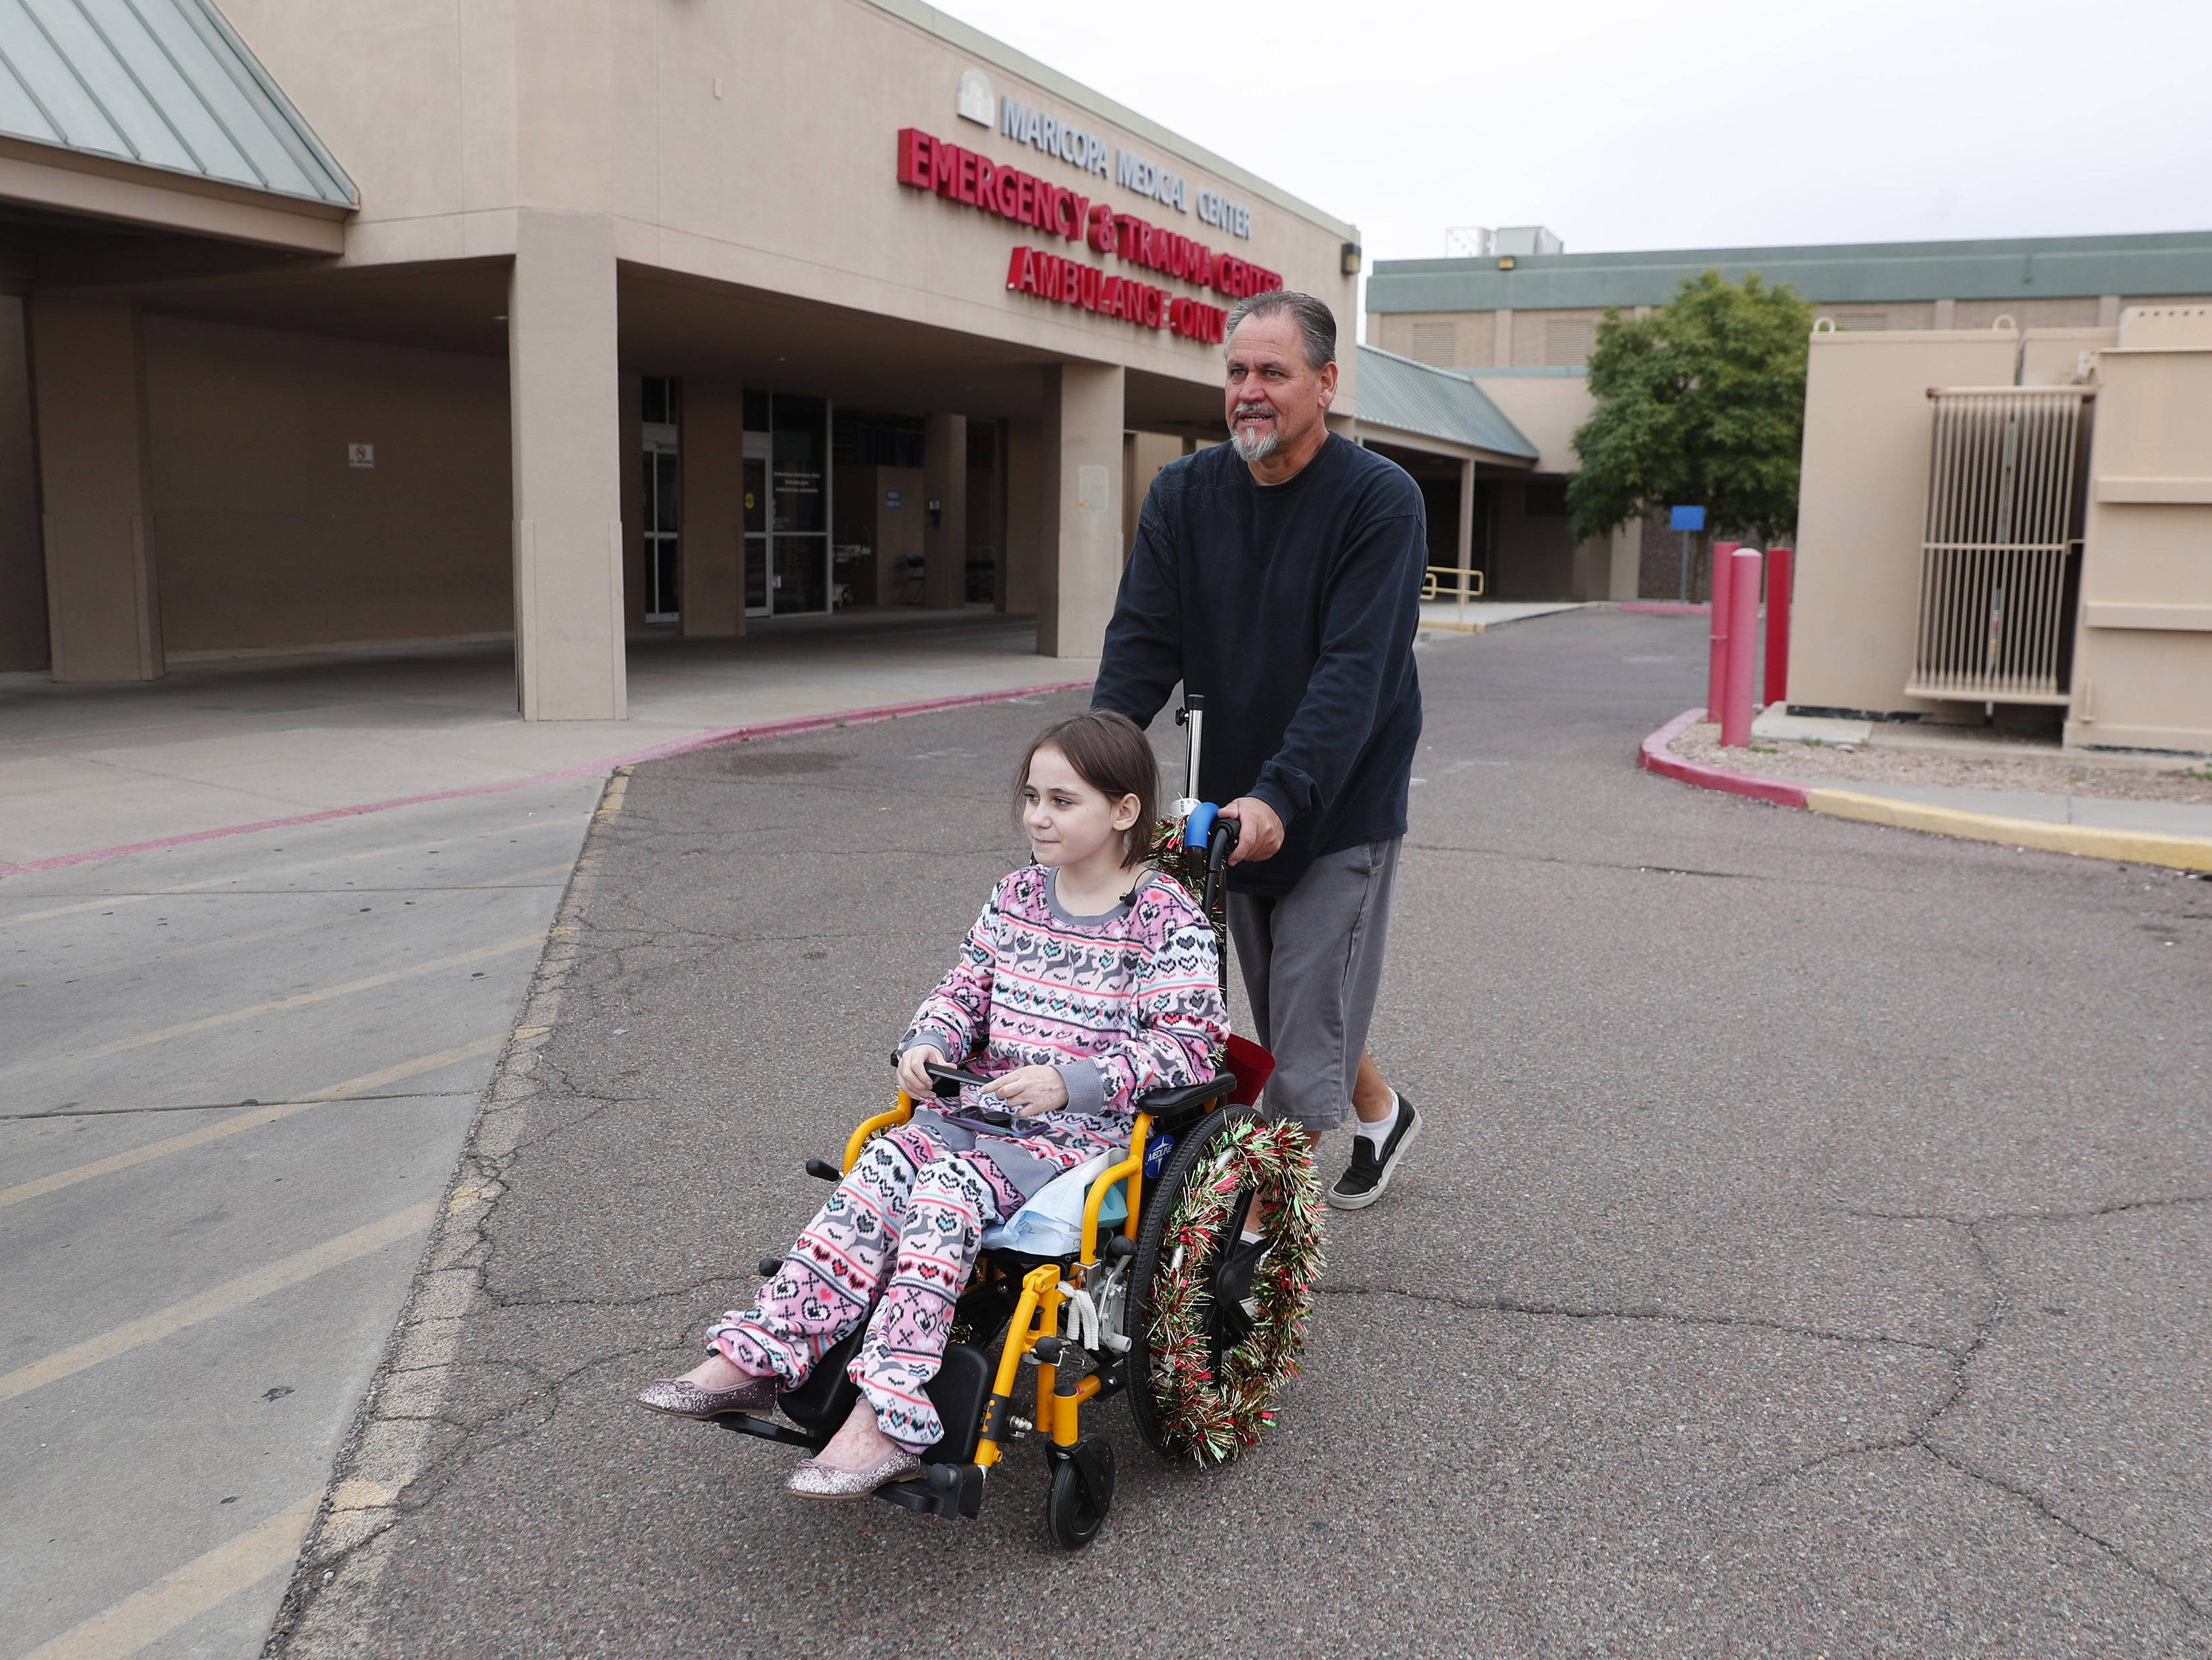 Isabella McCune is pushed in her wheelchair by her dad, J.D., at the Arizona Burn Center in Phoenix Dec. 12, 2018. The 9-year-old was severely burned in a home accident in March.